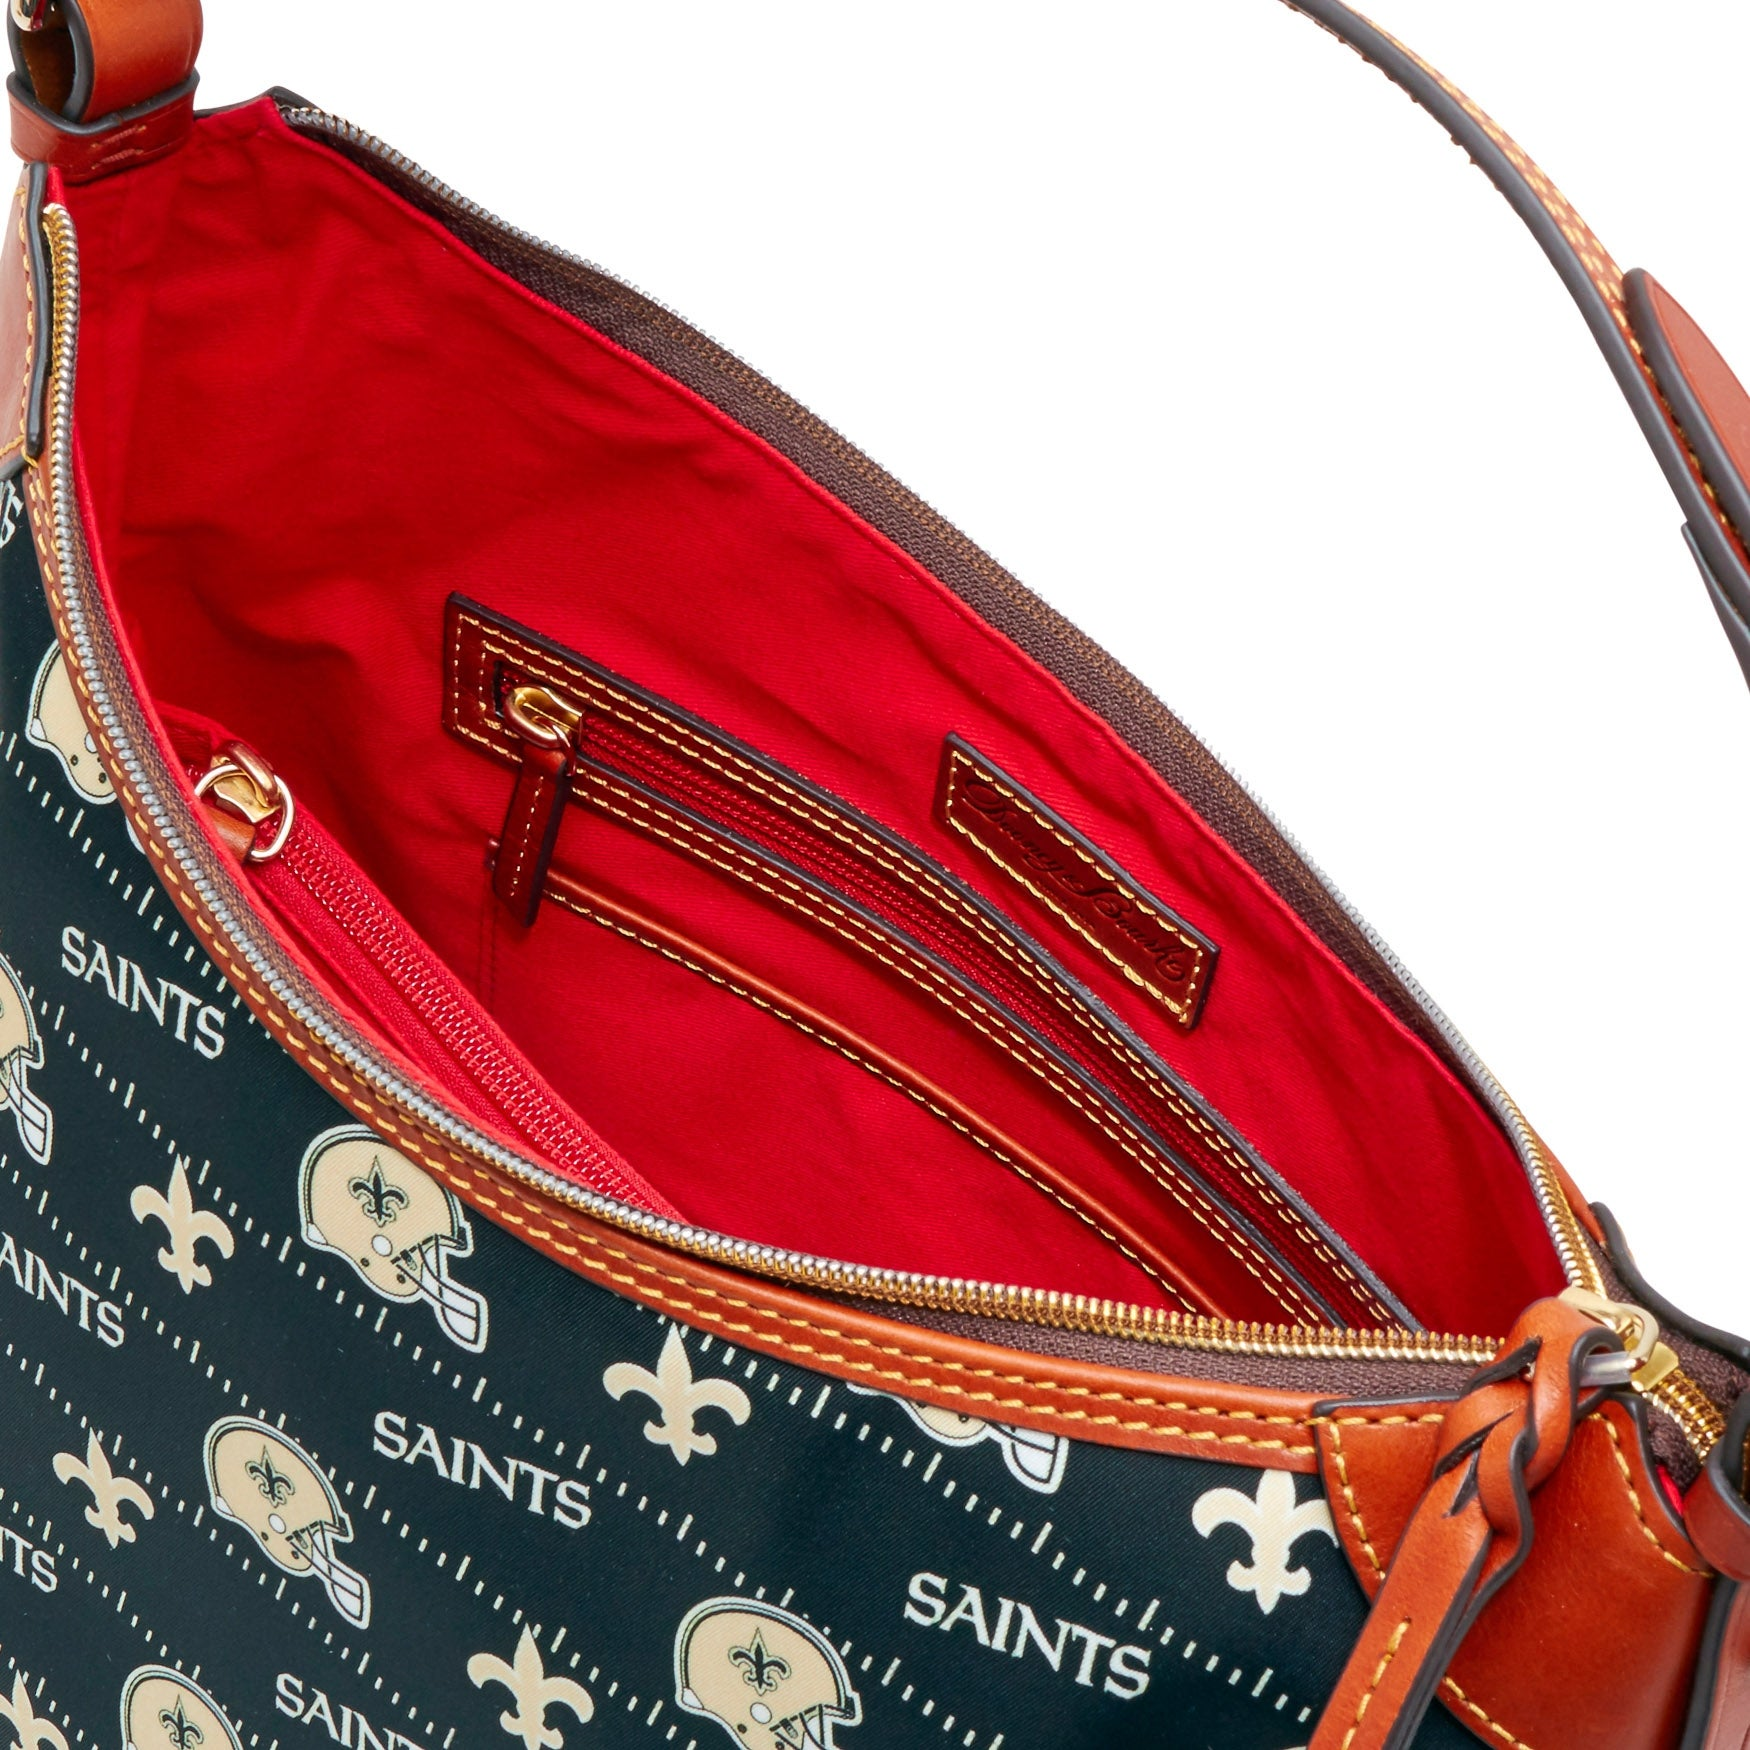 467d443adf Shop Dooney   Bourke NFL New Orleans Saints Large Erica Shoulder Bag  (Introduced by Dooney   Bourke at  168 in Aug 2017) - Free Shipping Today -  Overstock - ...